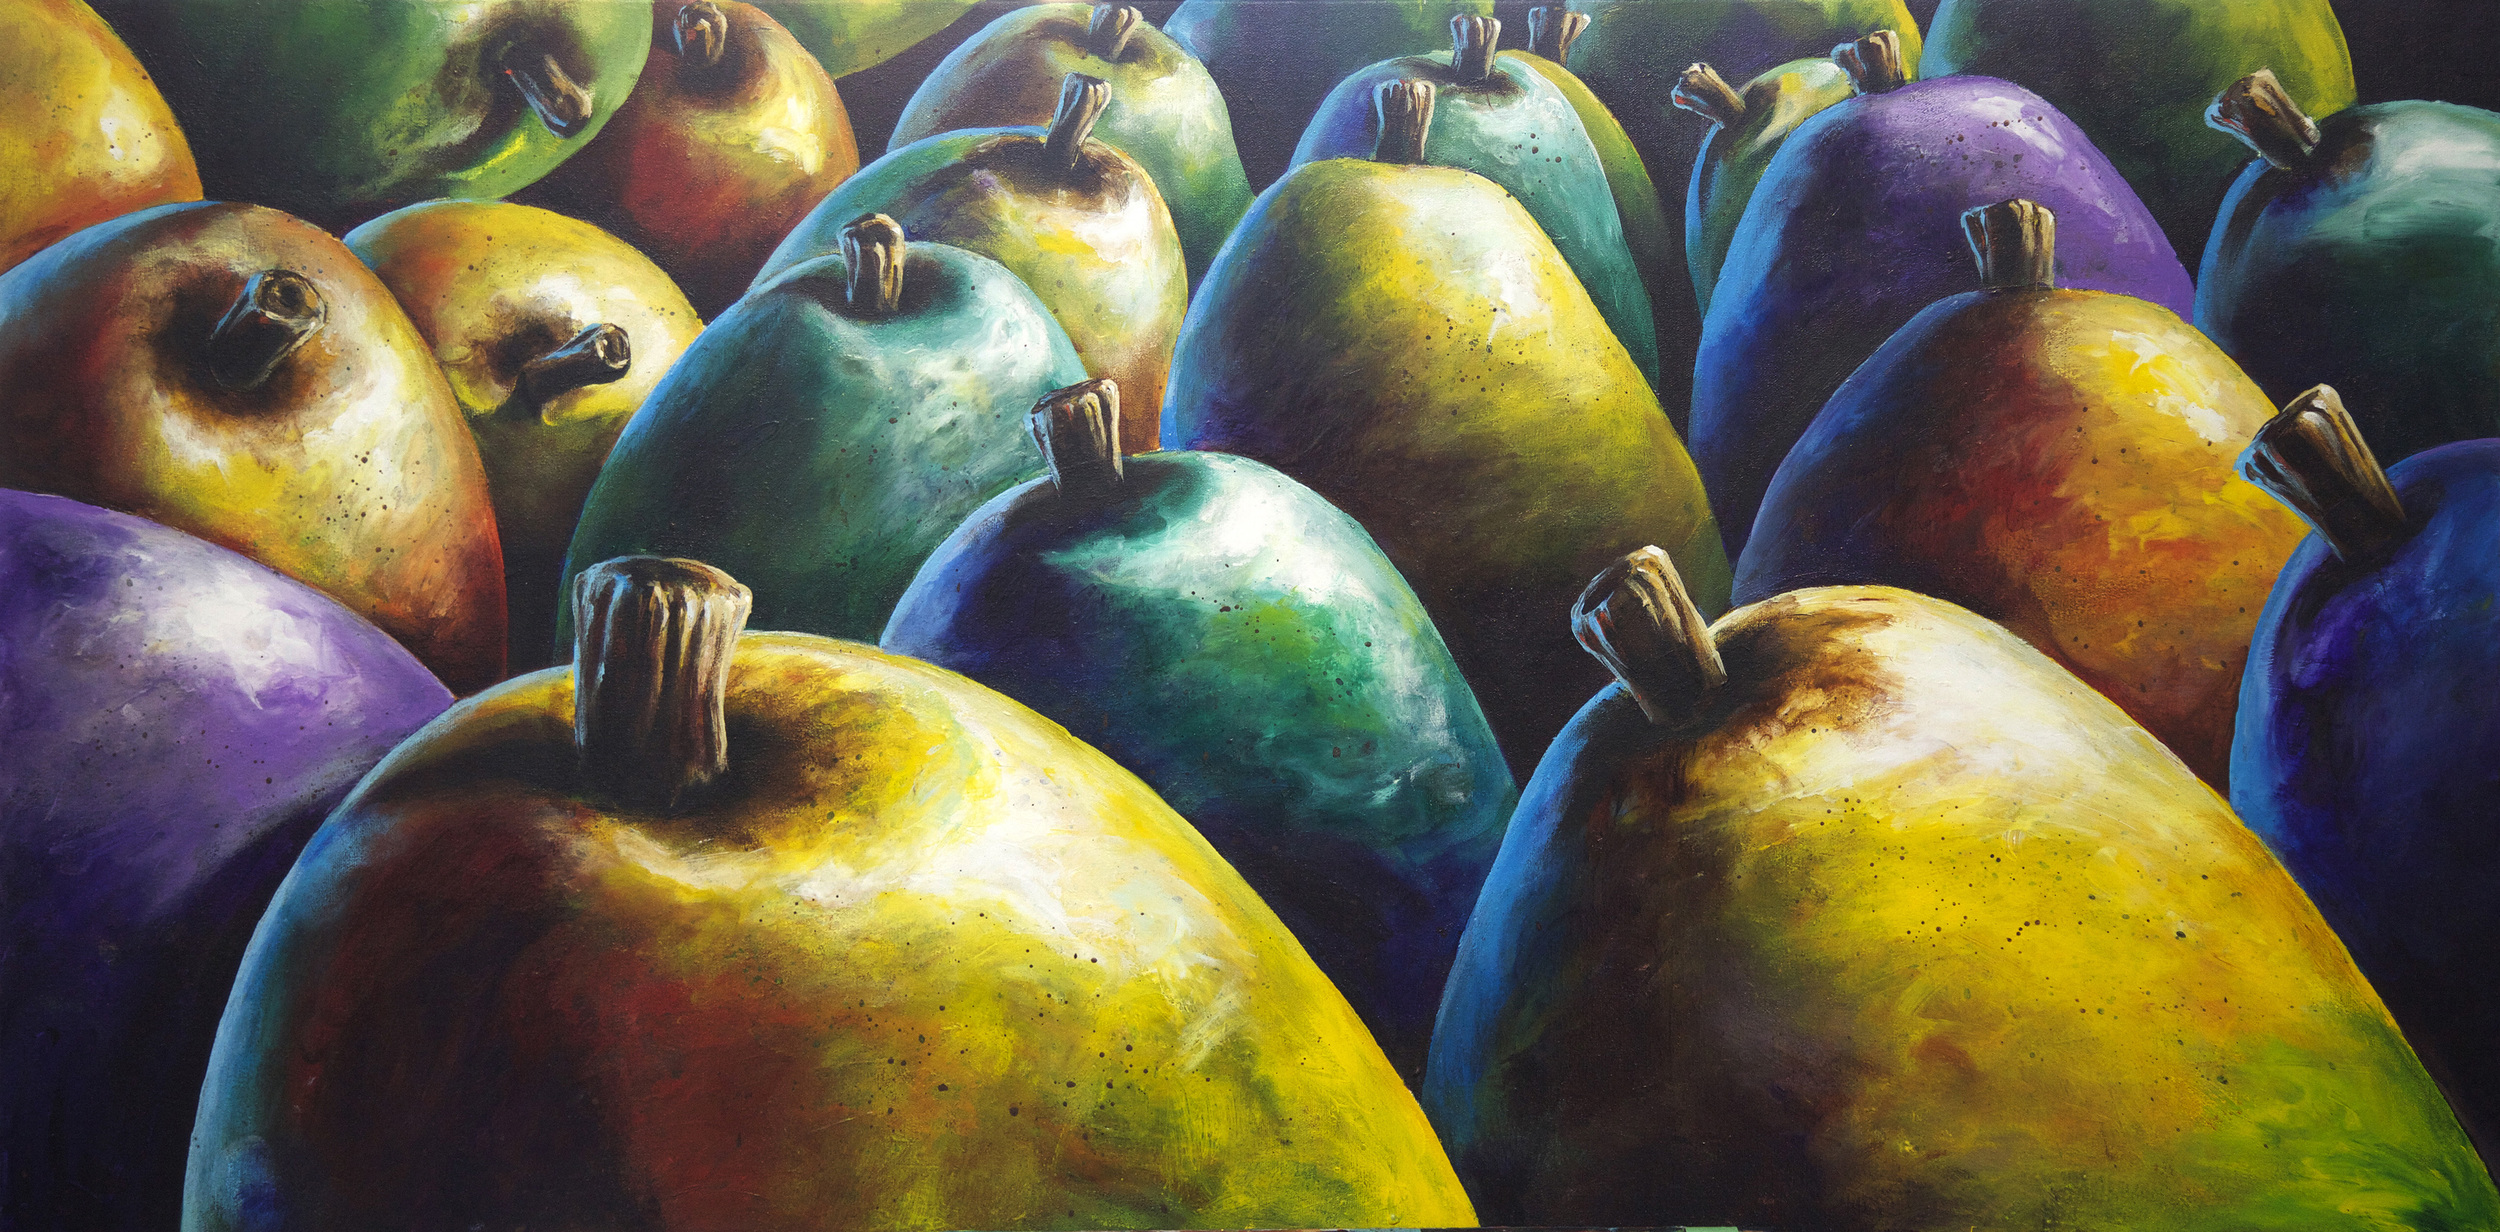 bill_higginson_hyper colour pears-surrealism_painting-acrylic-painting-pears-fruit-canvas